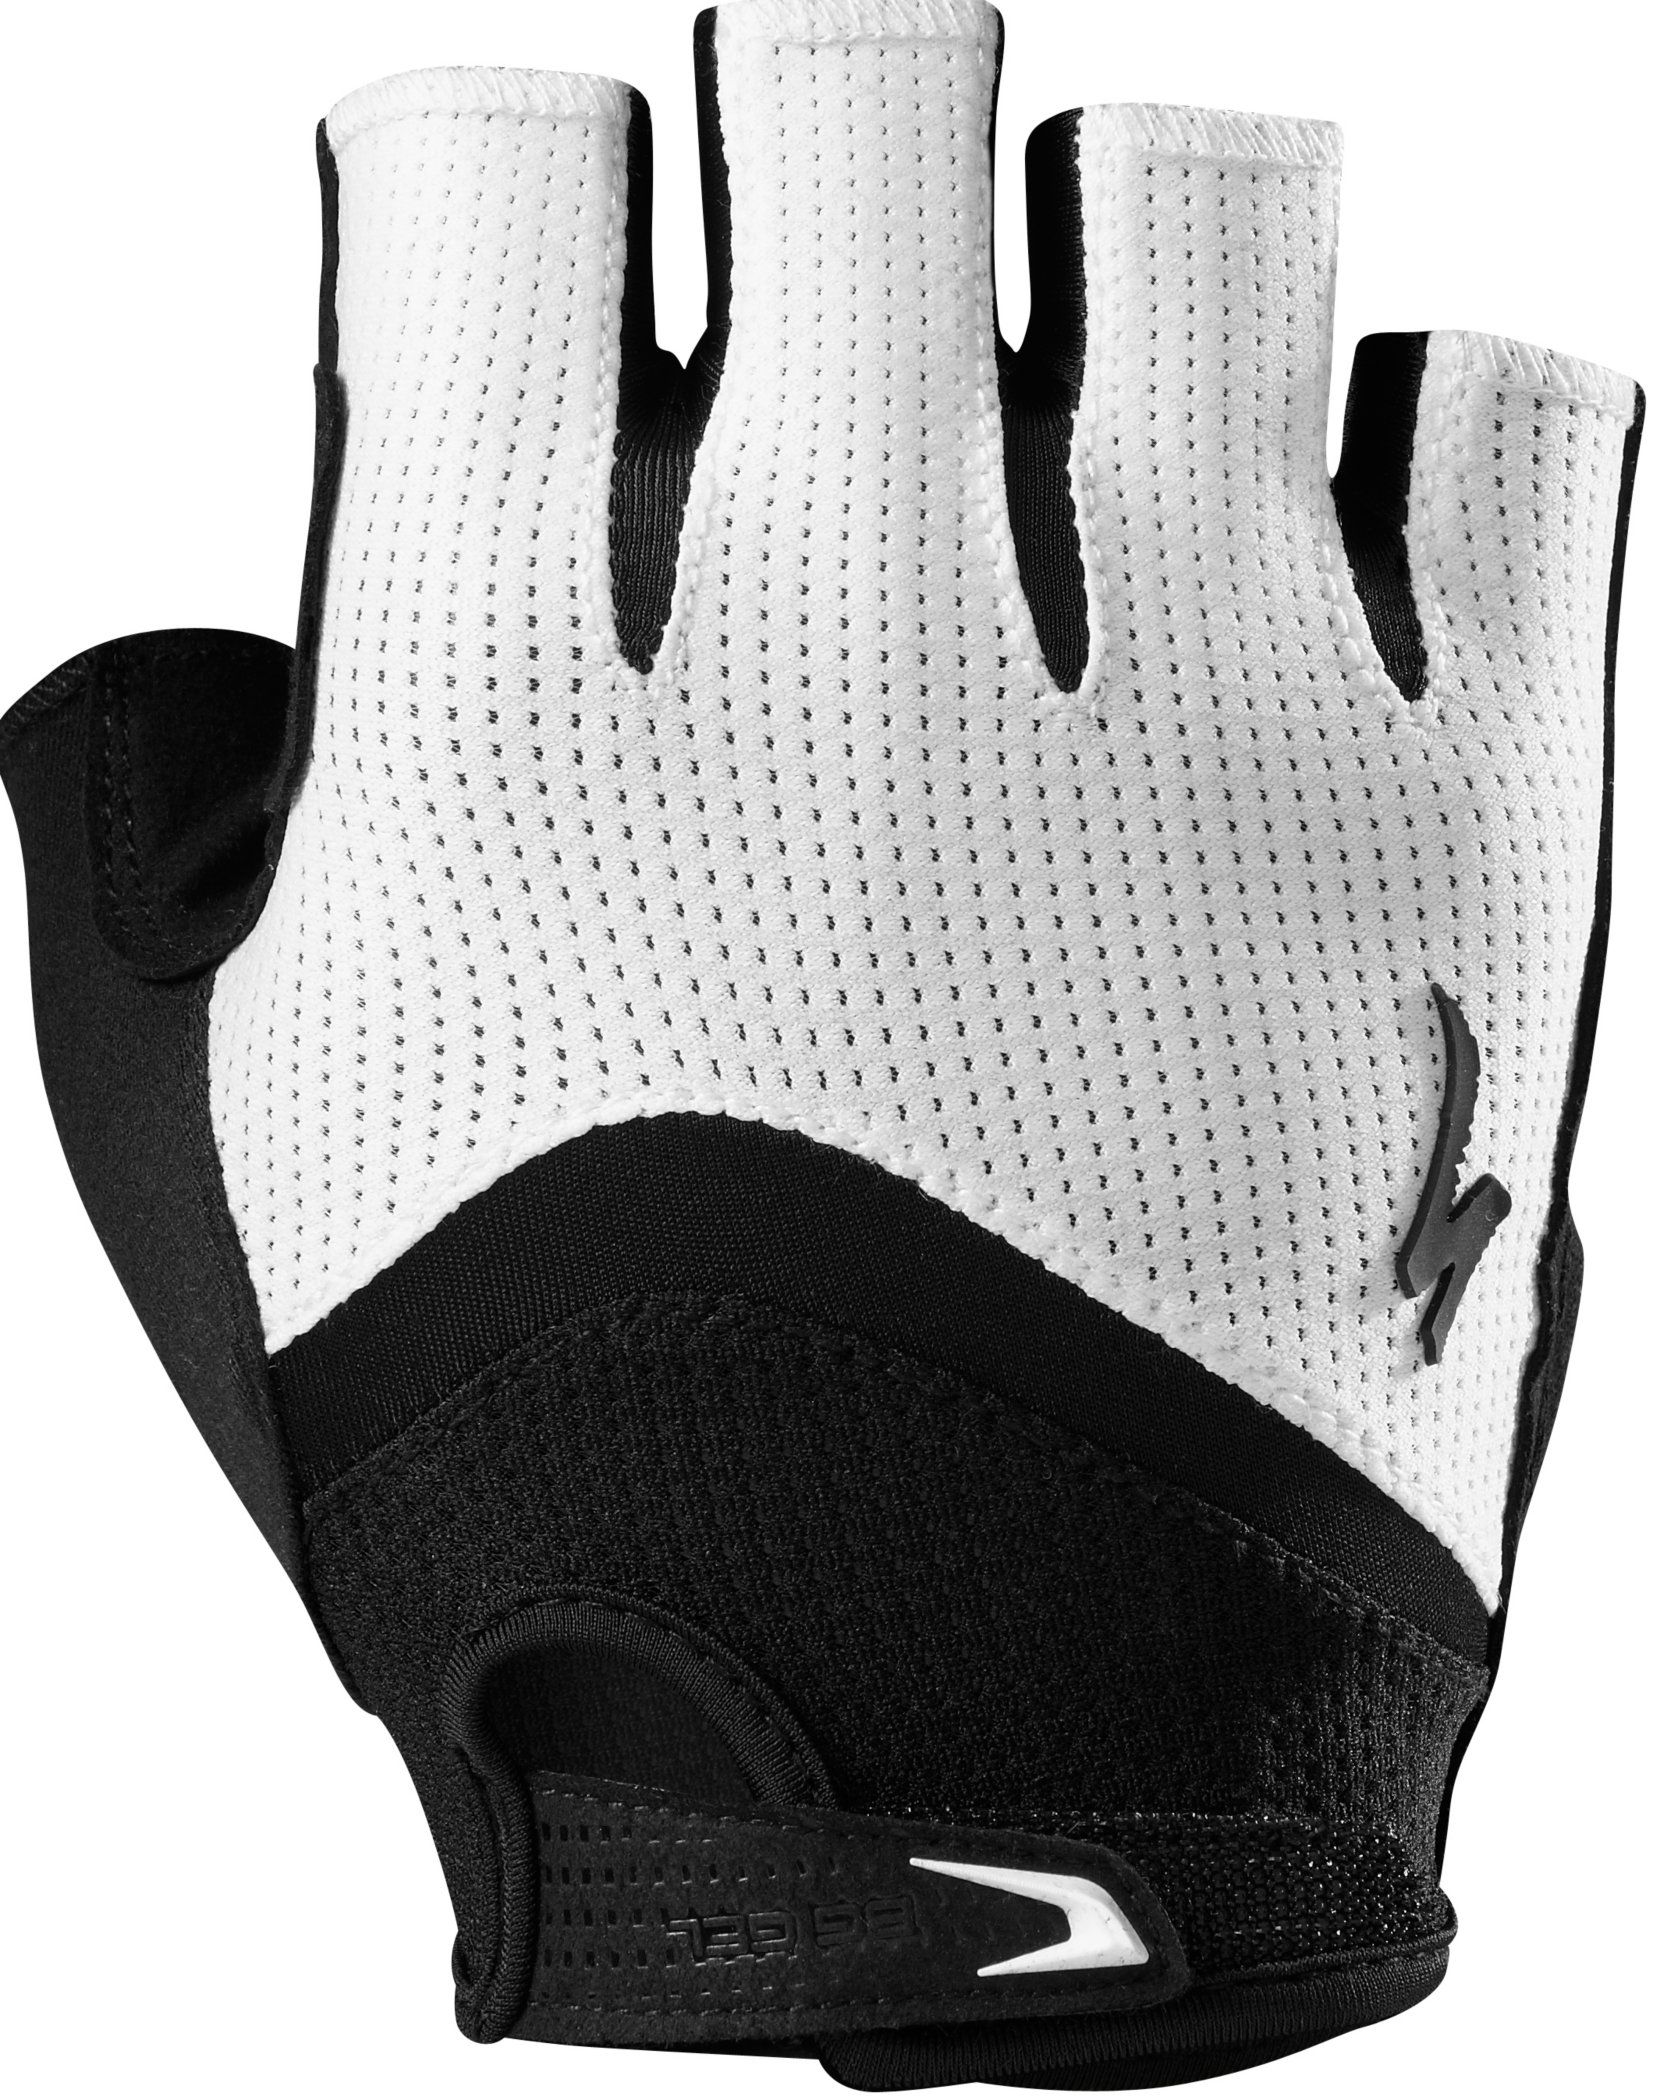 SPECIALIZED BG GEL GLOVE SF WHT/BLK L - Alpha Bikes